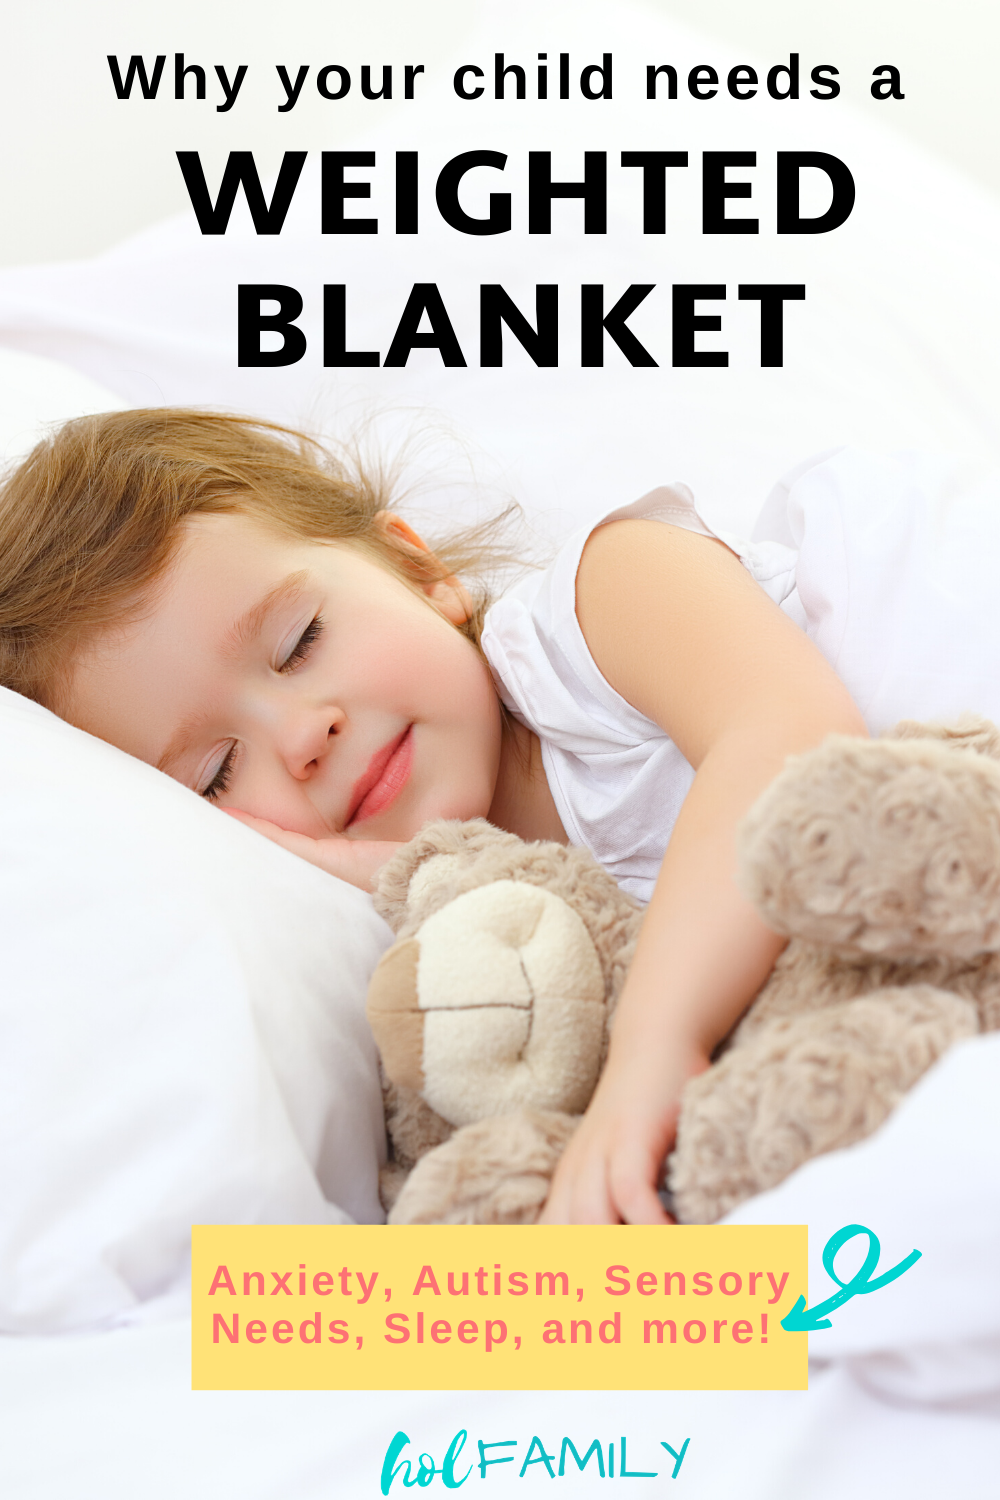 5 Weighted Blanket Benefits That Will Make You Wish You Had One Hol Family In 2020 Autism In Adults Autism Parenting Weighted Blanket